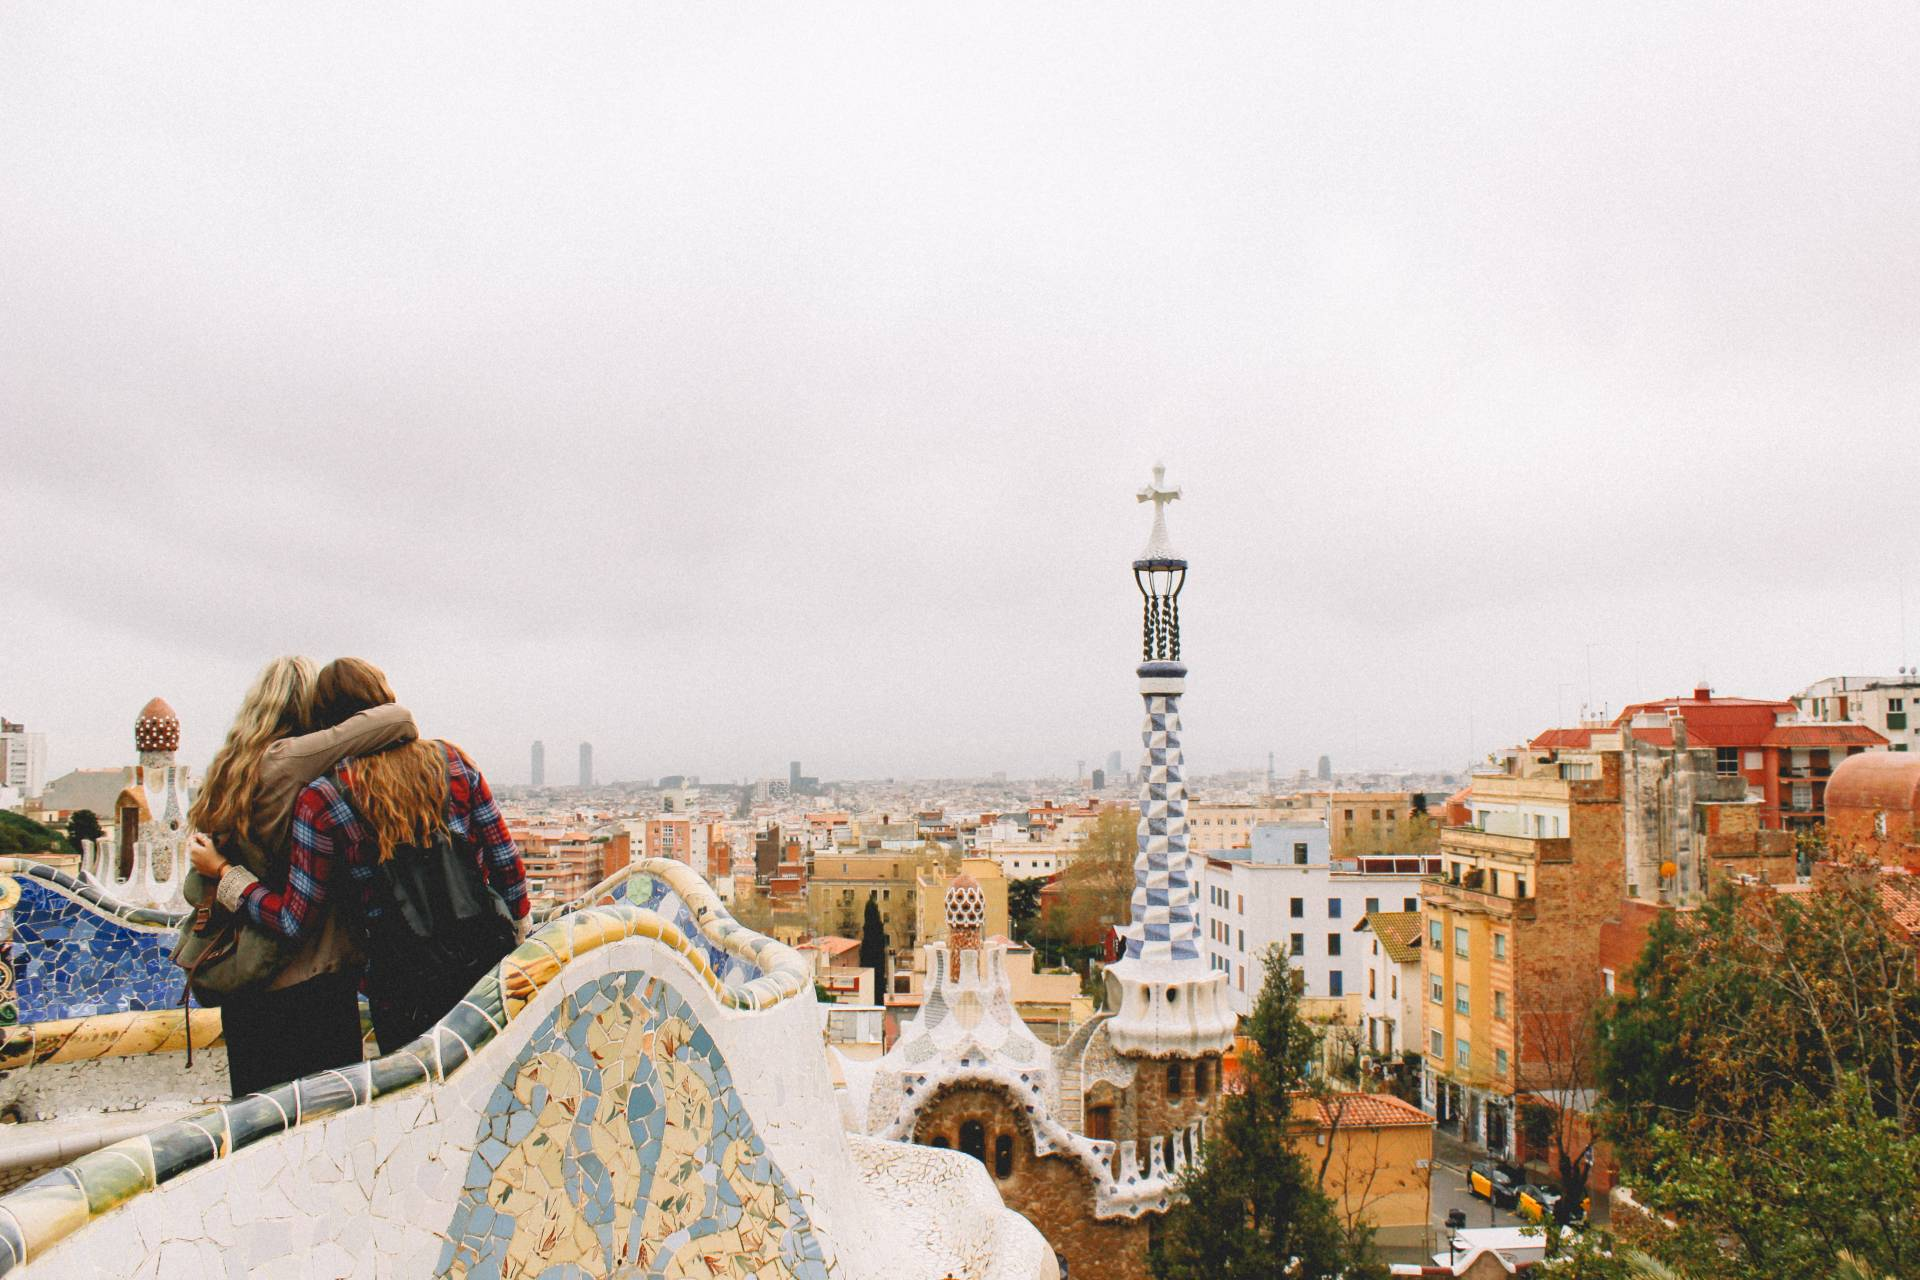 Parc Guell by Antoni Gaudi in Barcelona, Spain